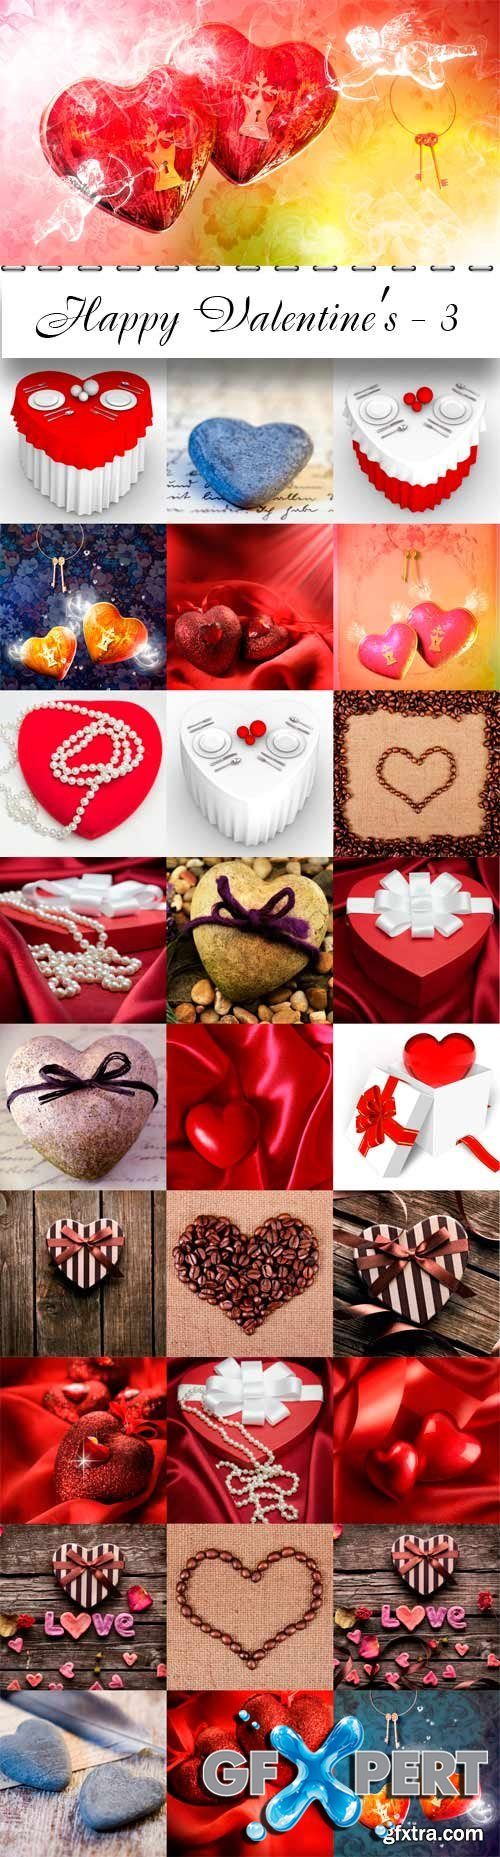 Happy Valentine's day raster graphics - 3